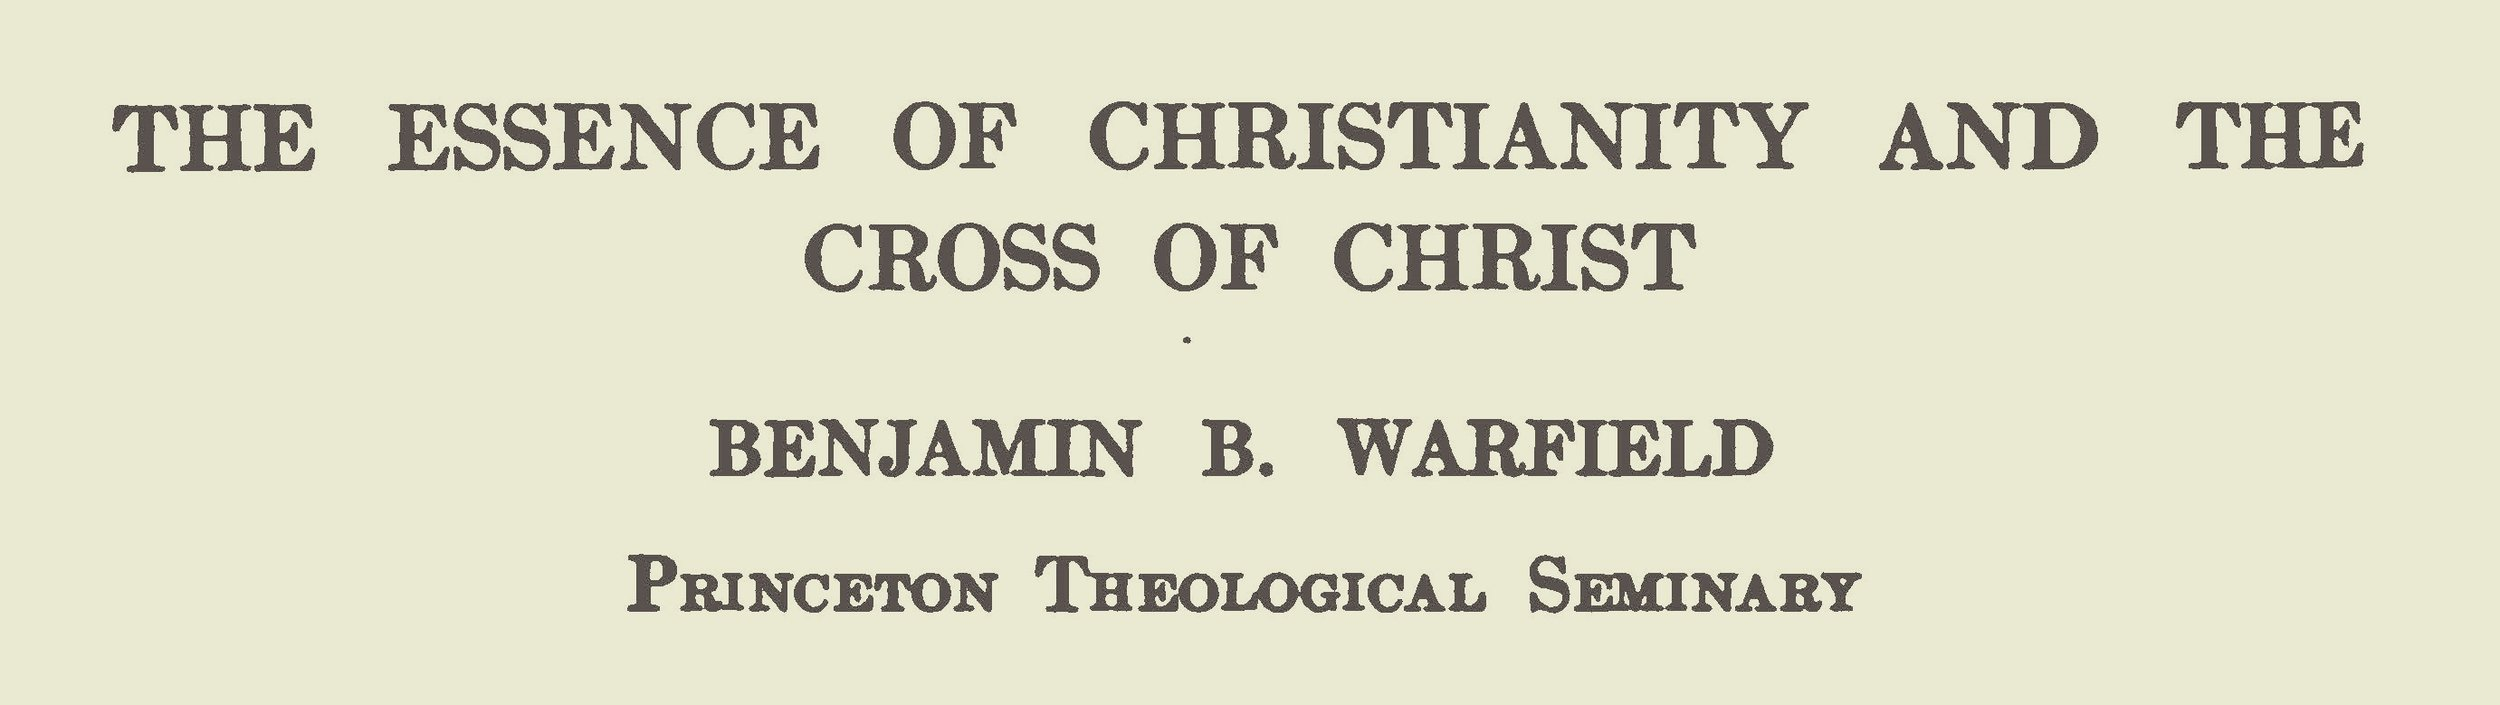 Warfield, Benjamin Breckinridge, The Essence of Christianity and the Cross of Christ Title Page.jpg